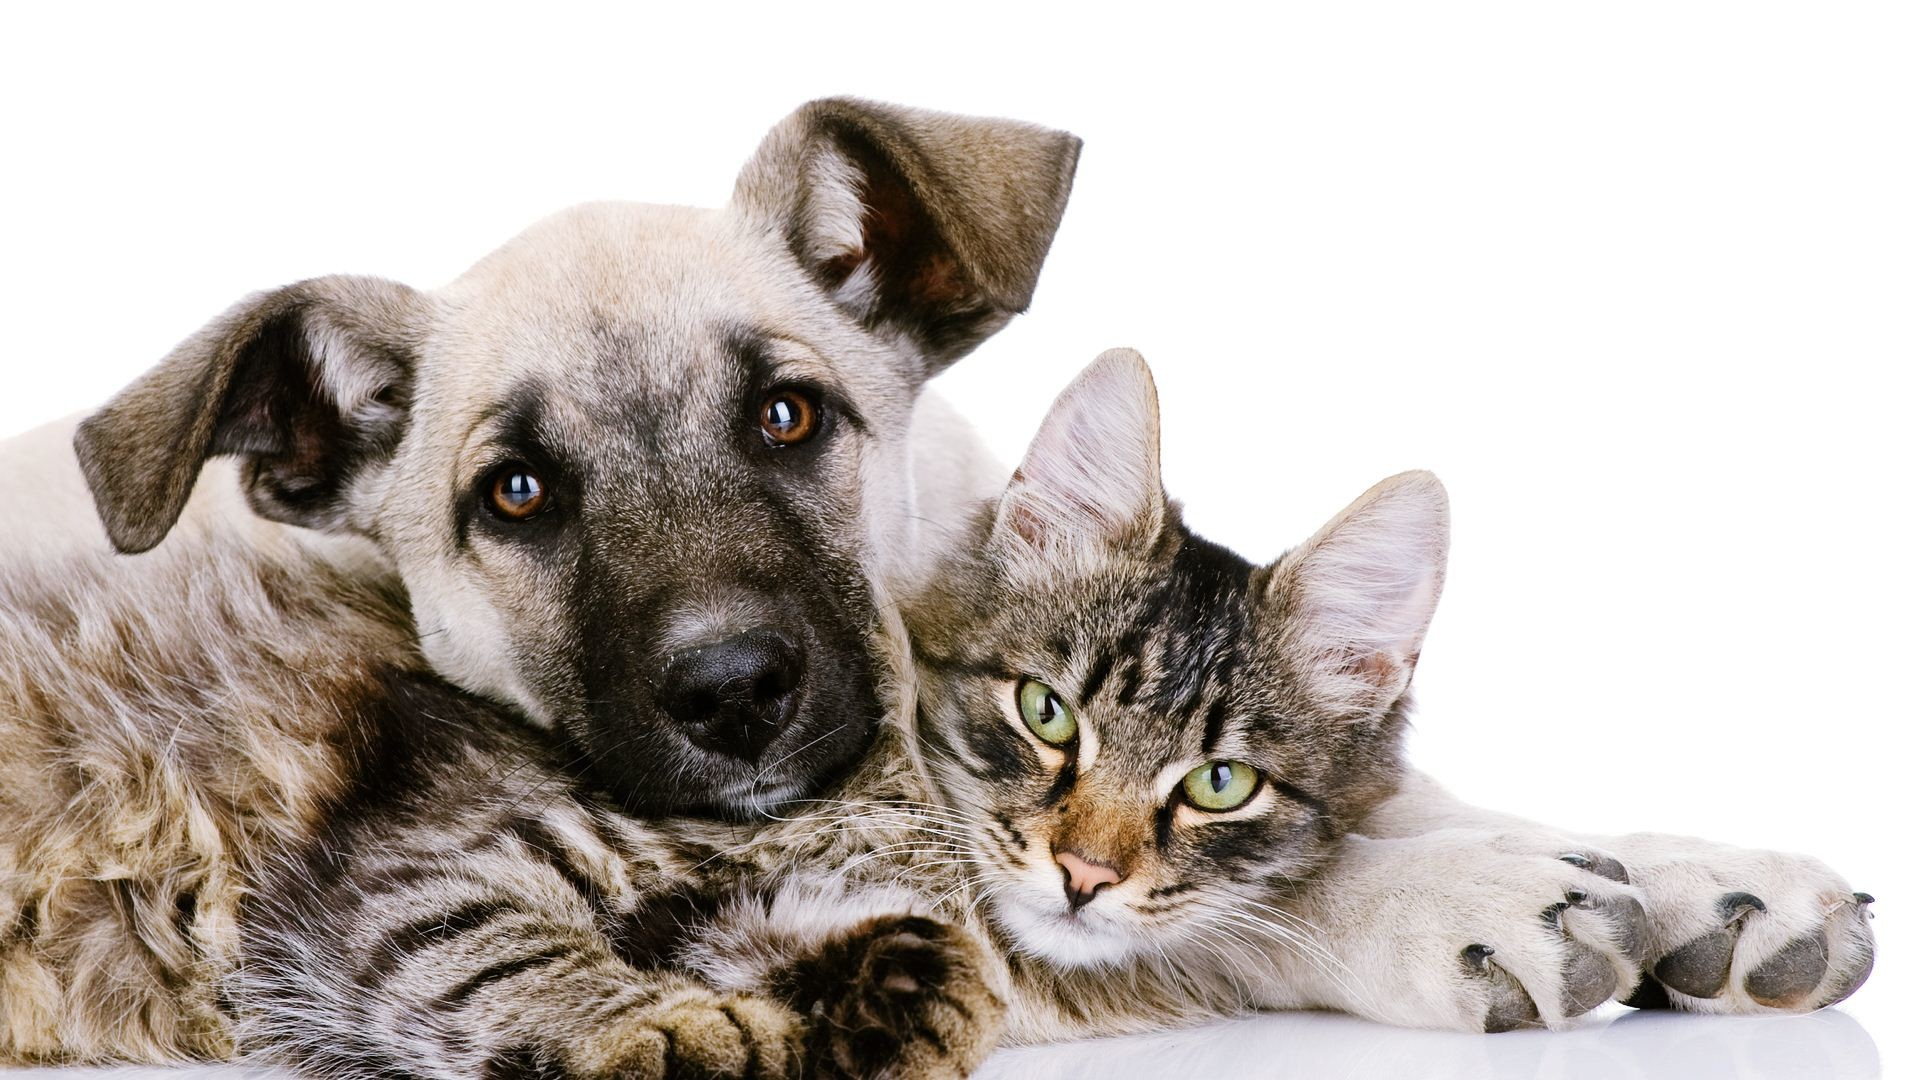 Cat And Dog wallpapers